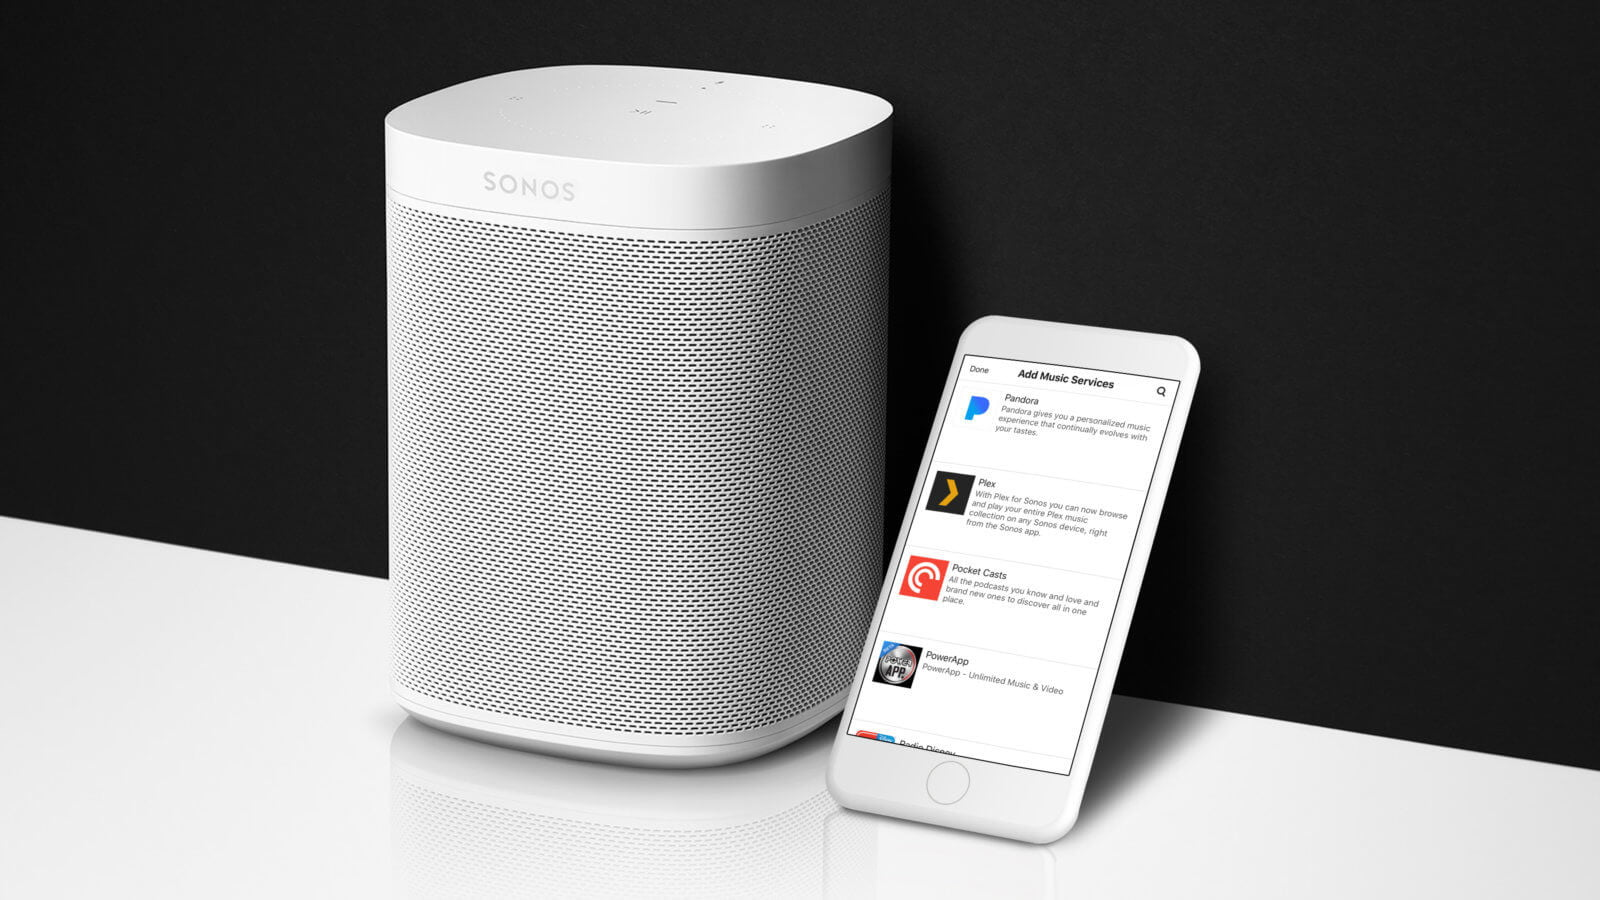 Amazon Music Sonos Plex For Sonos Unlocks Your Music Library S Full Potential